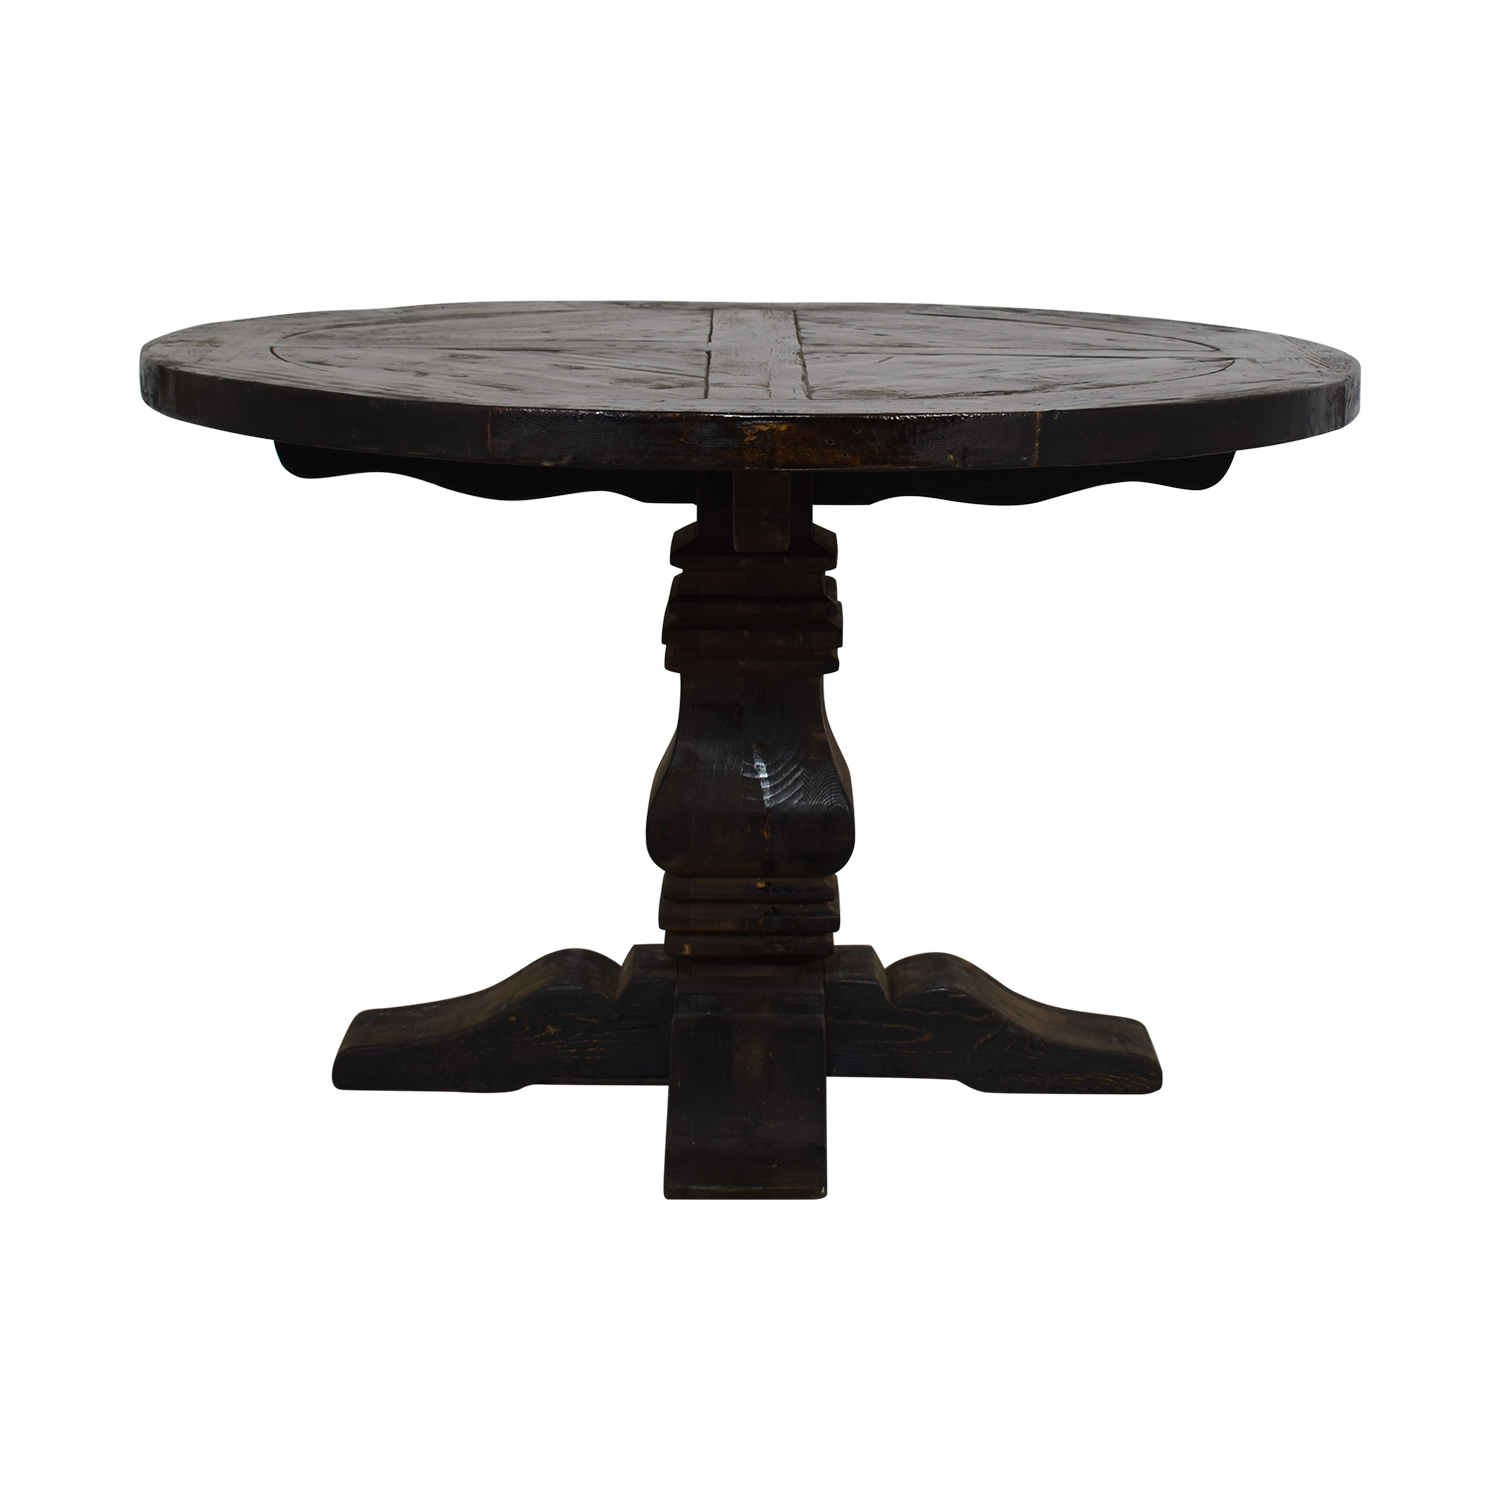 Restoration Hardware Restoration Hardware Round Salvaged Wood Distressed Trestle Table Dinner Tables